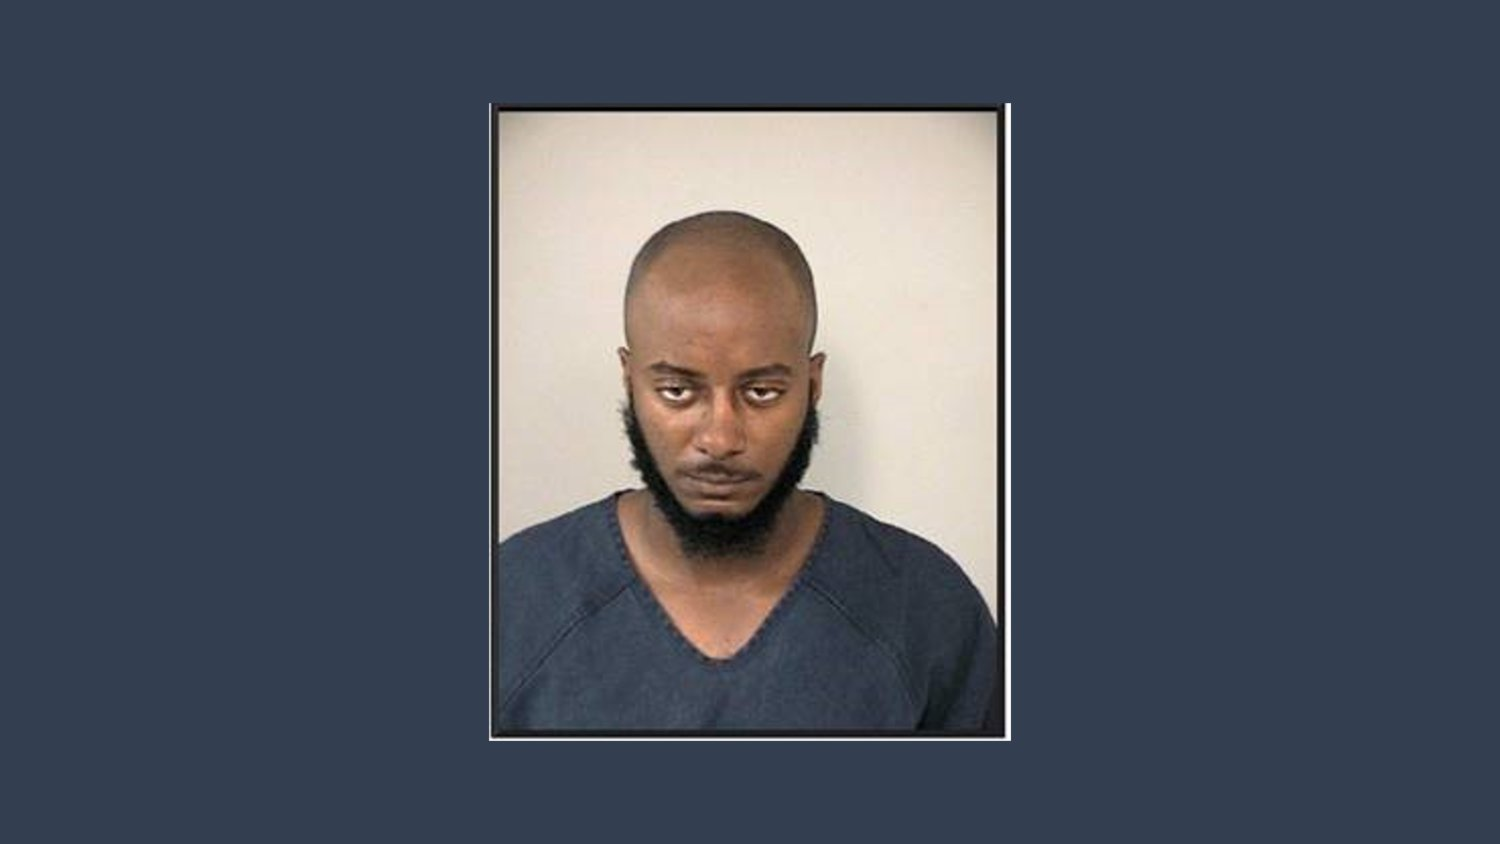 Lewis Carothers, 28, of Sugar Land was arrested early Saturday and charged with Aggravated Assault in Fort Bend County.